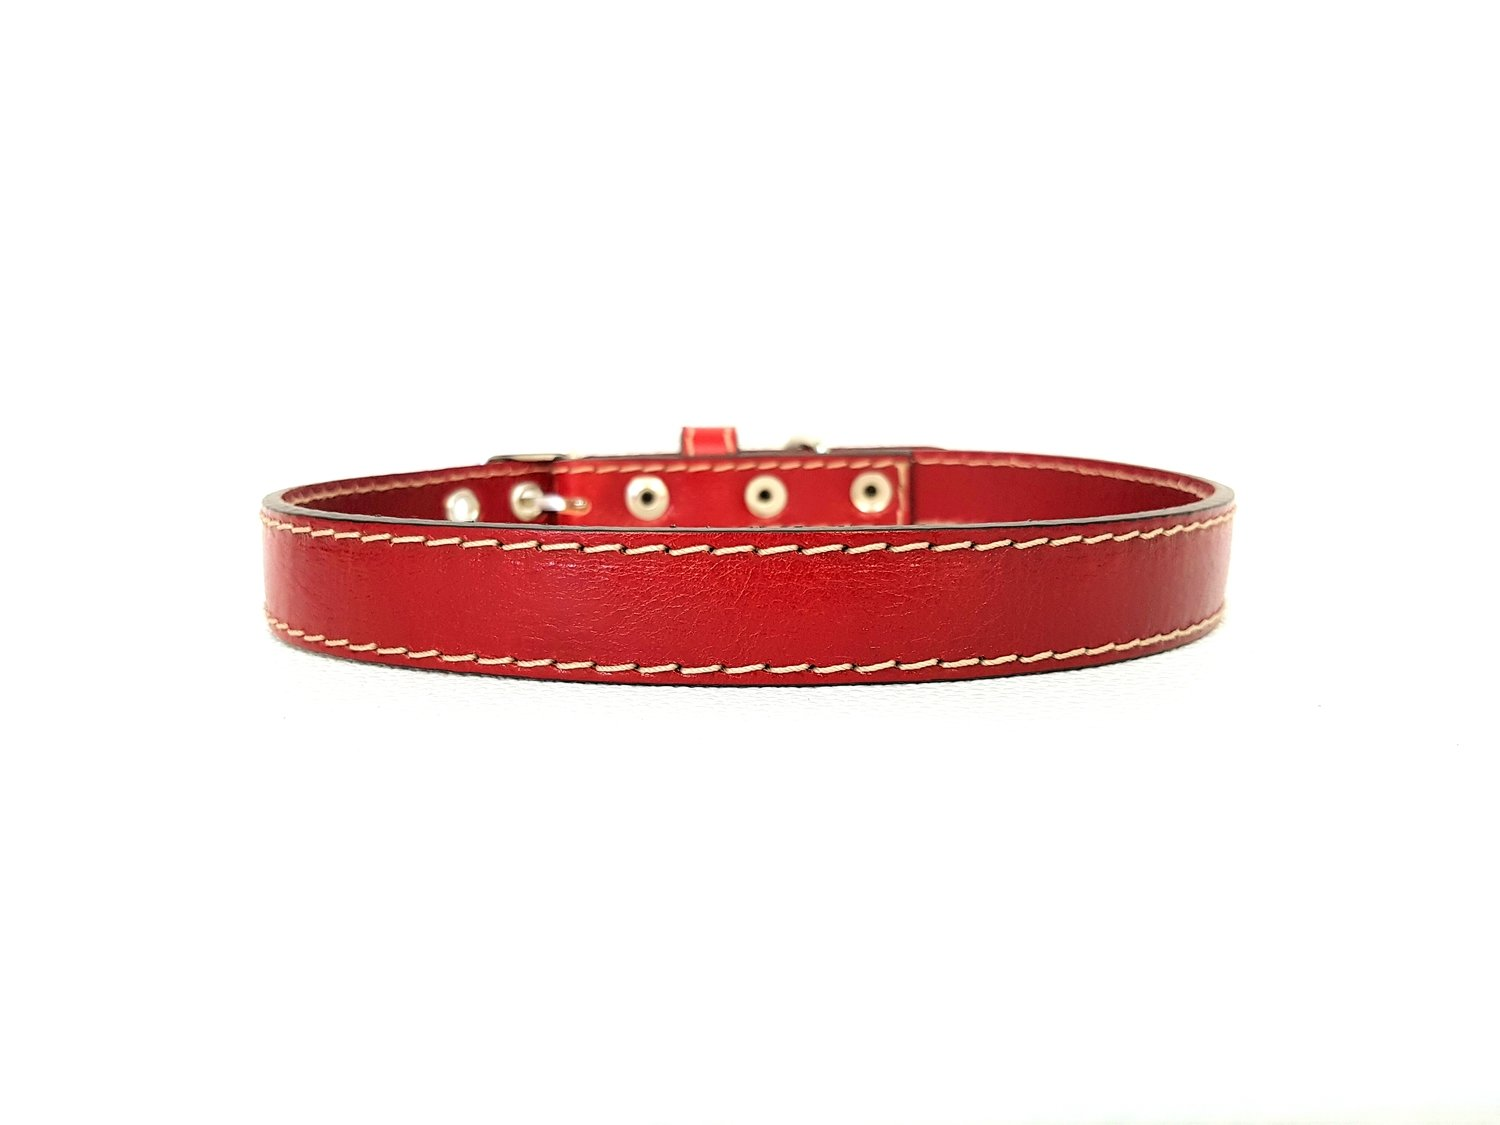 Rosso scuro / Dark red (2 cm / 0,79 inches)